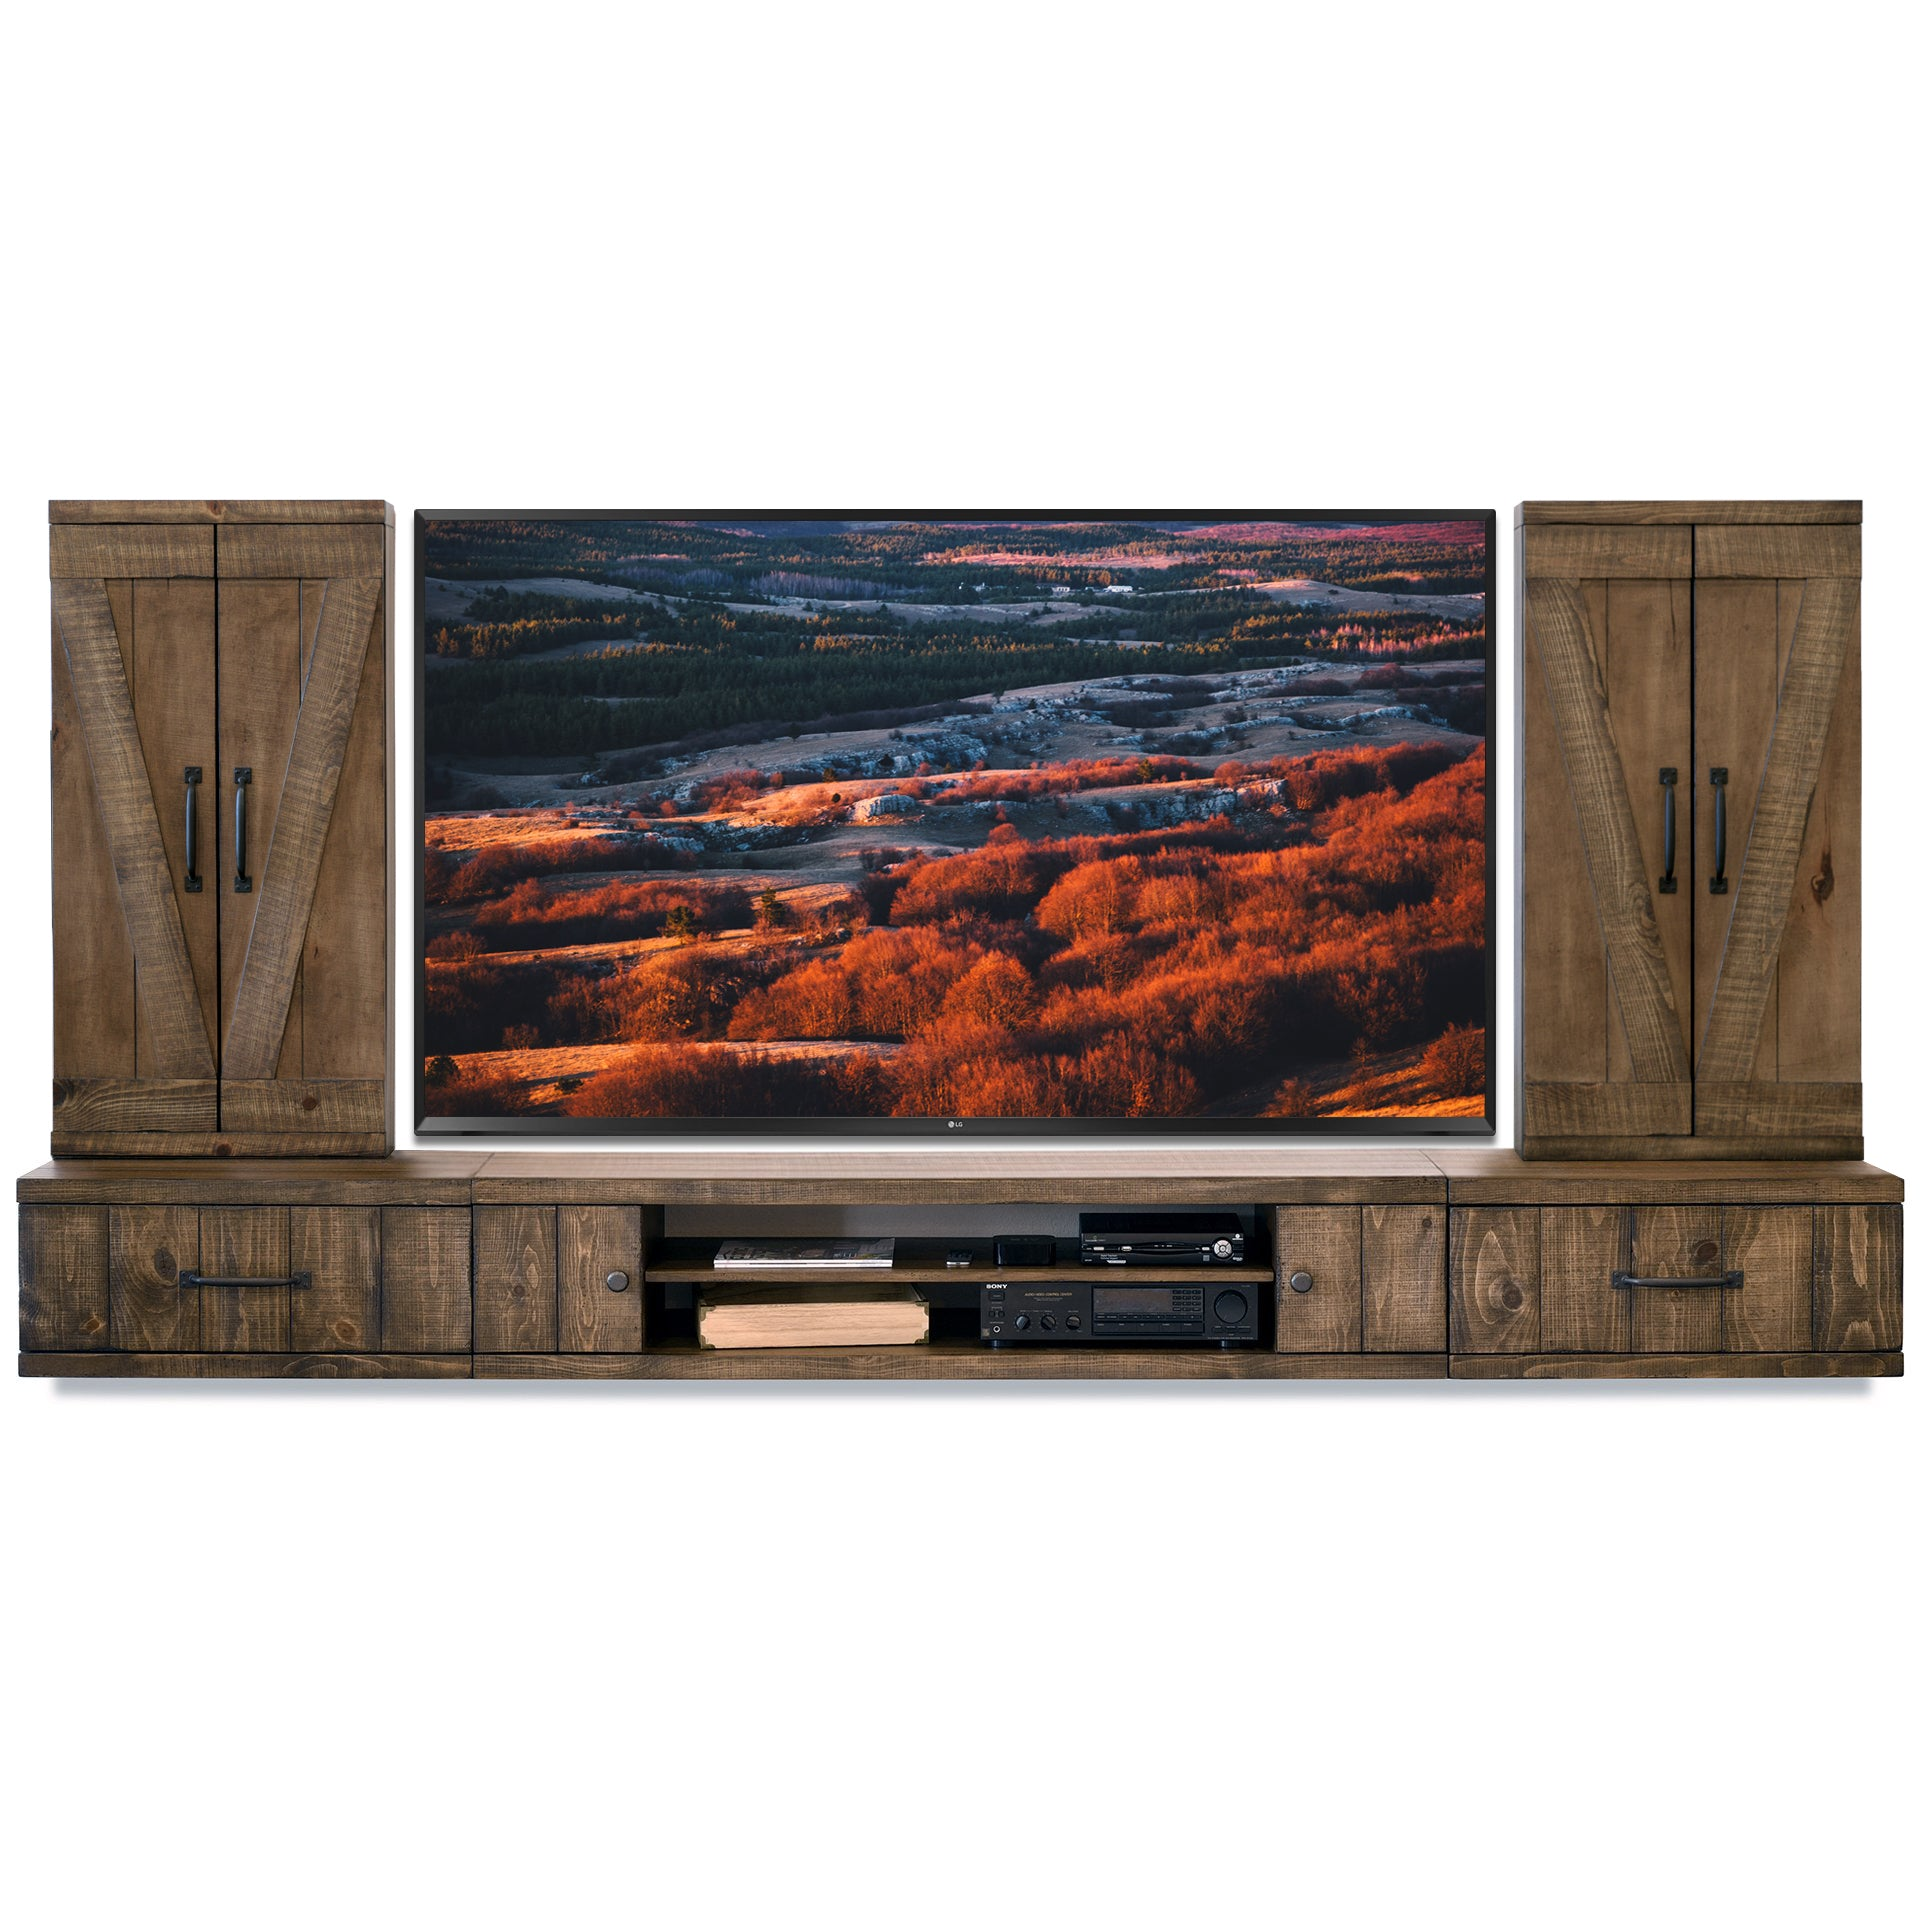 Rustic Farmhouse Barn Door Floating TV Stand Entertainment Center Console - Spice